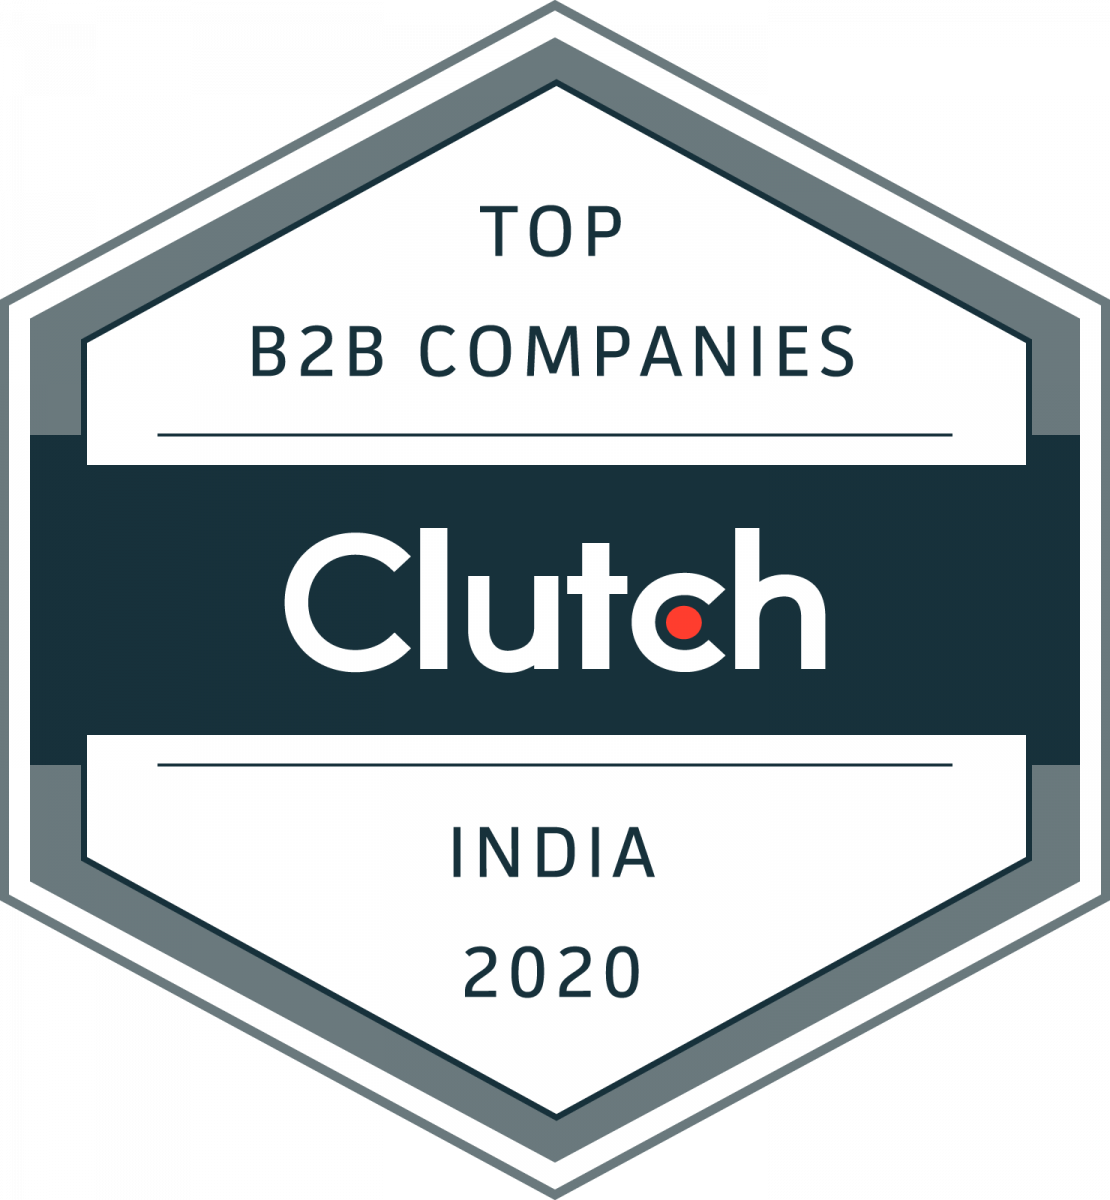 Top B2B Companies in India Clutch